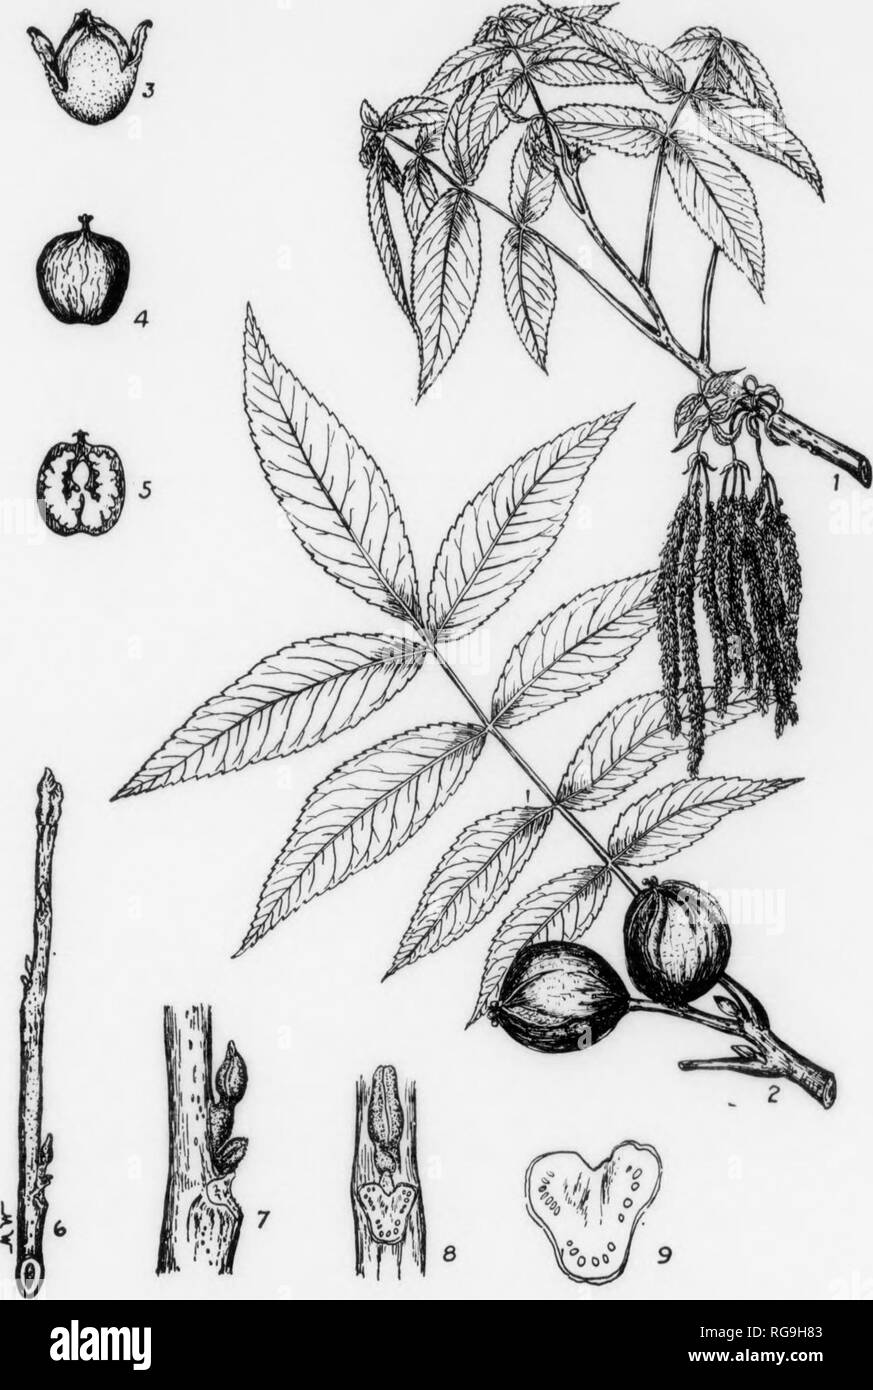 . Bulletin (Pennsylvania Department of Forestry), no. 11. Forests and forestry. i 116 BITTER NUT HICKORY Carya cordiformis, (Wangenheim) K. Koch FORM-A rather large tree usually 60-75 ft. high with a diameter ^'^V^lt'L^^oeT^C^o'^ Za^TZ^ inn f* with a diameter ot 21-3 feet. Trunk long, clean, with litUe taper, crown â¢tout and ascending, often with semi-pendulous branchlets. BARKâLieht gray rather thin, roughened by shallow Assures and narrow ridgeBj tight- litt^ng f^ does n^^el off or shag off In loose scales like the Shag-bark Hickory. See Fig. 112. TWIGS-Slender smooth glossy, often yellow-g - Stock Image